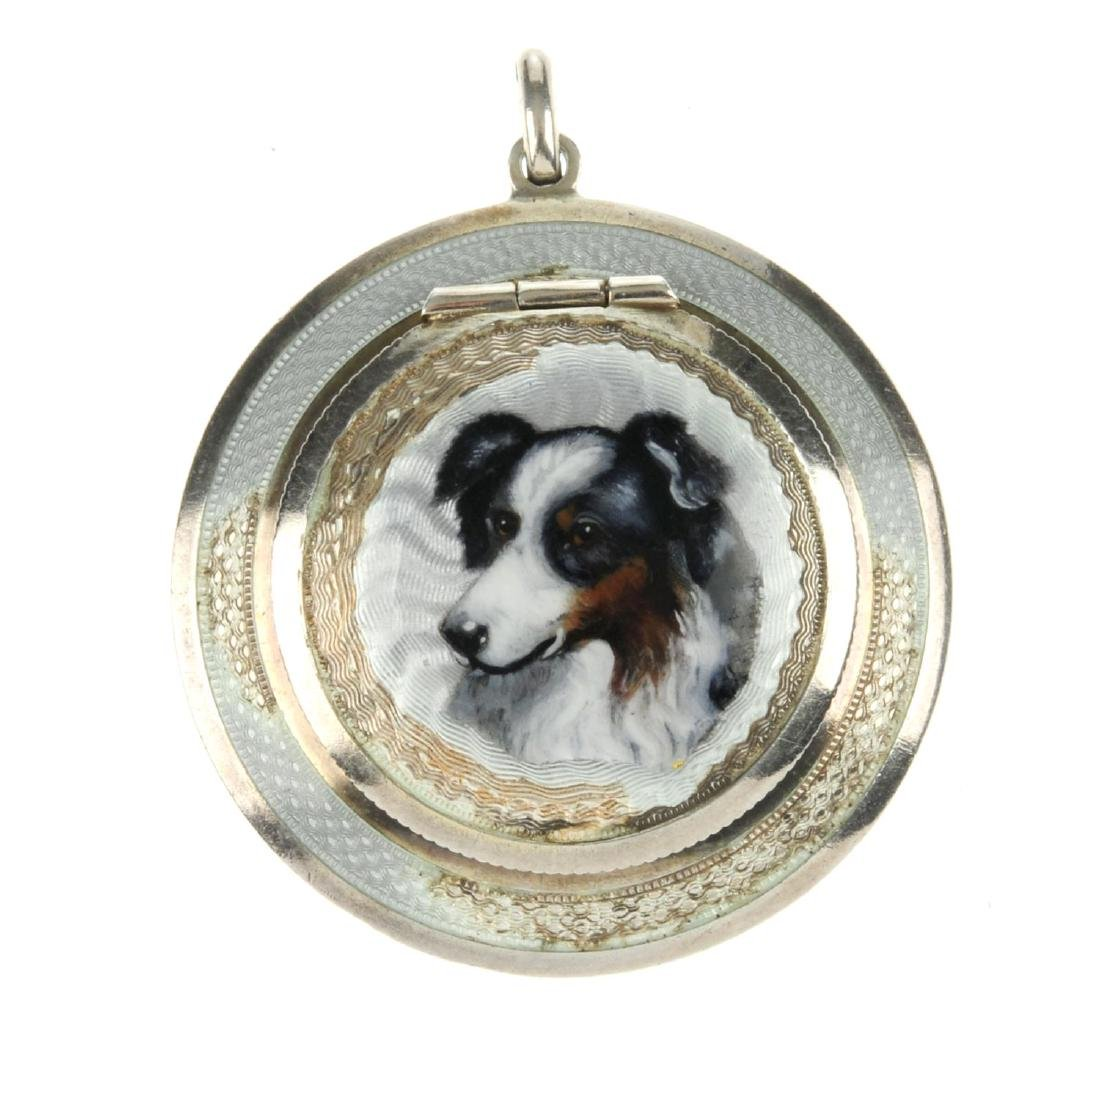 An early 20th century guilloche enamel compact pendant.